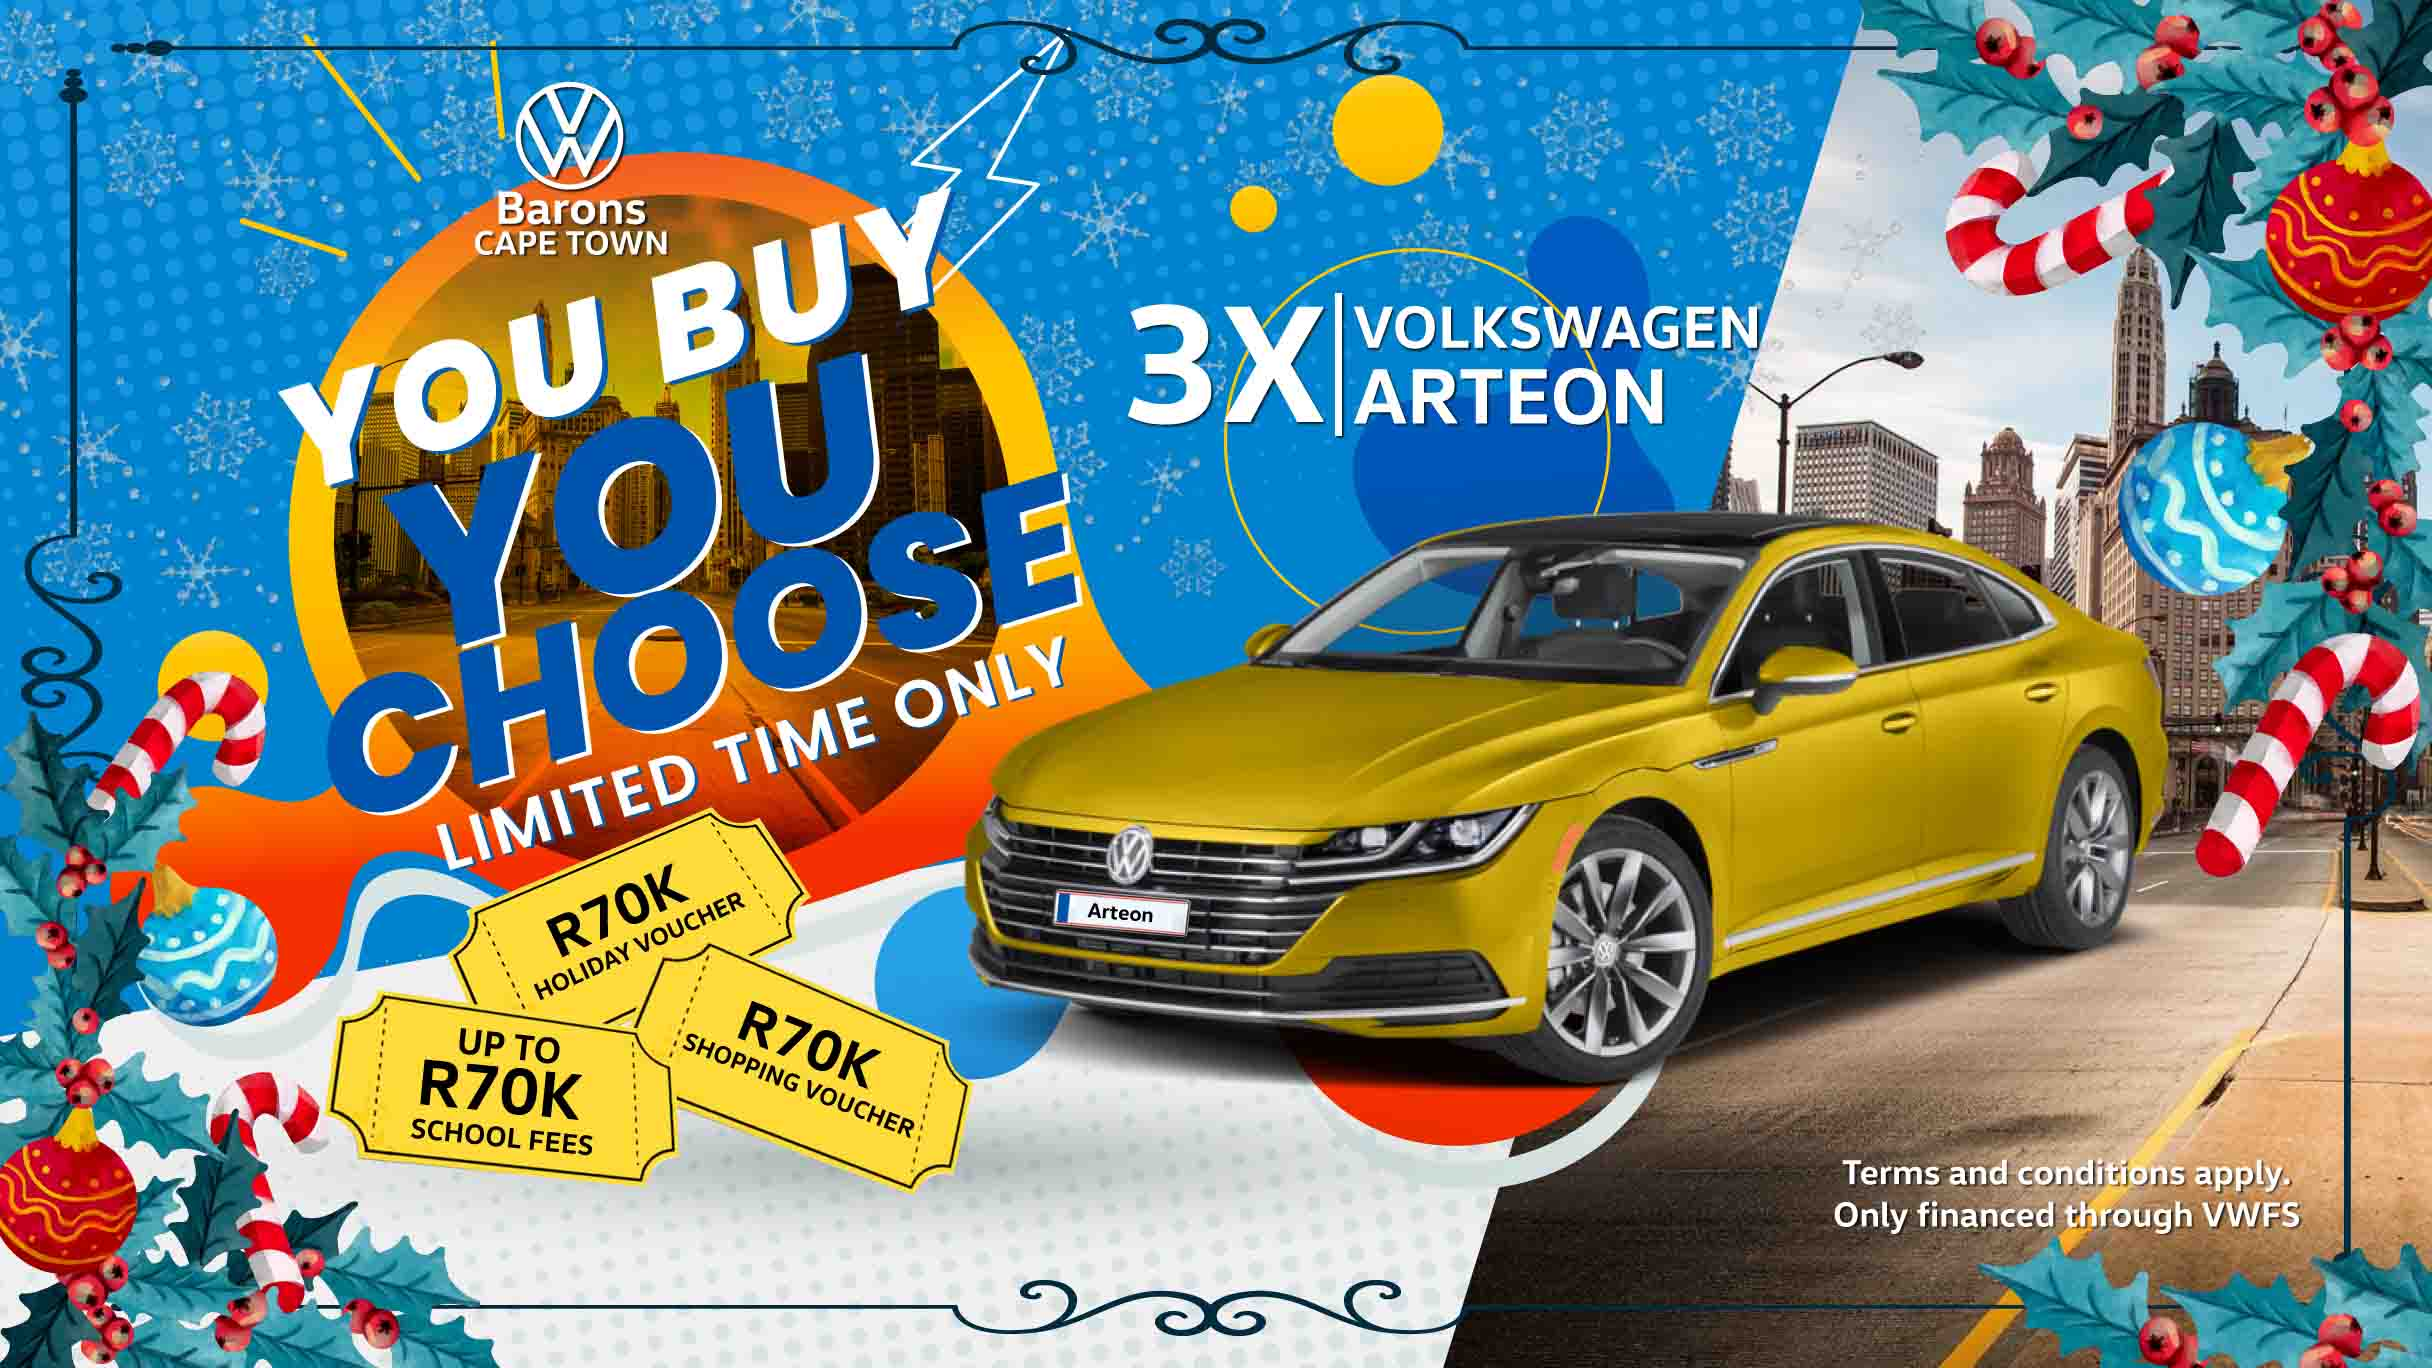 Festive offer on the Arteon at Barons Cape Town